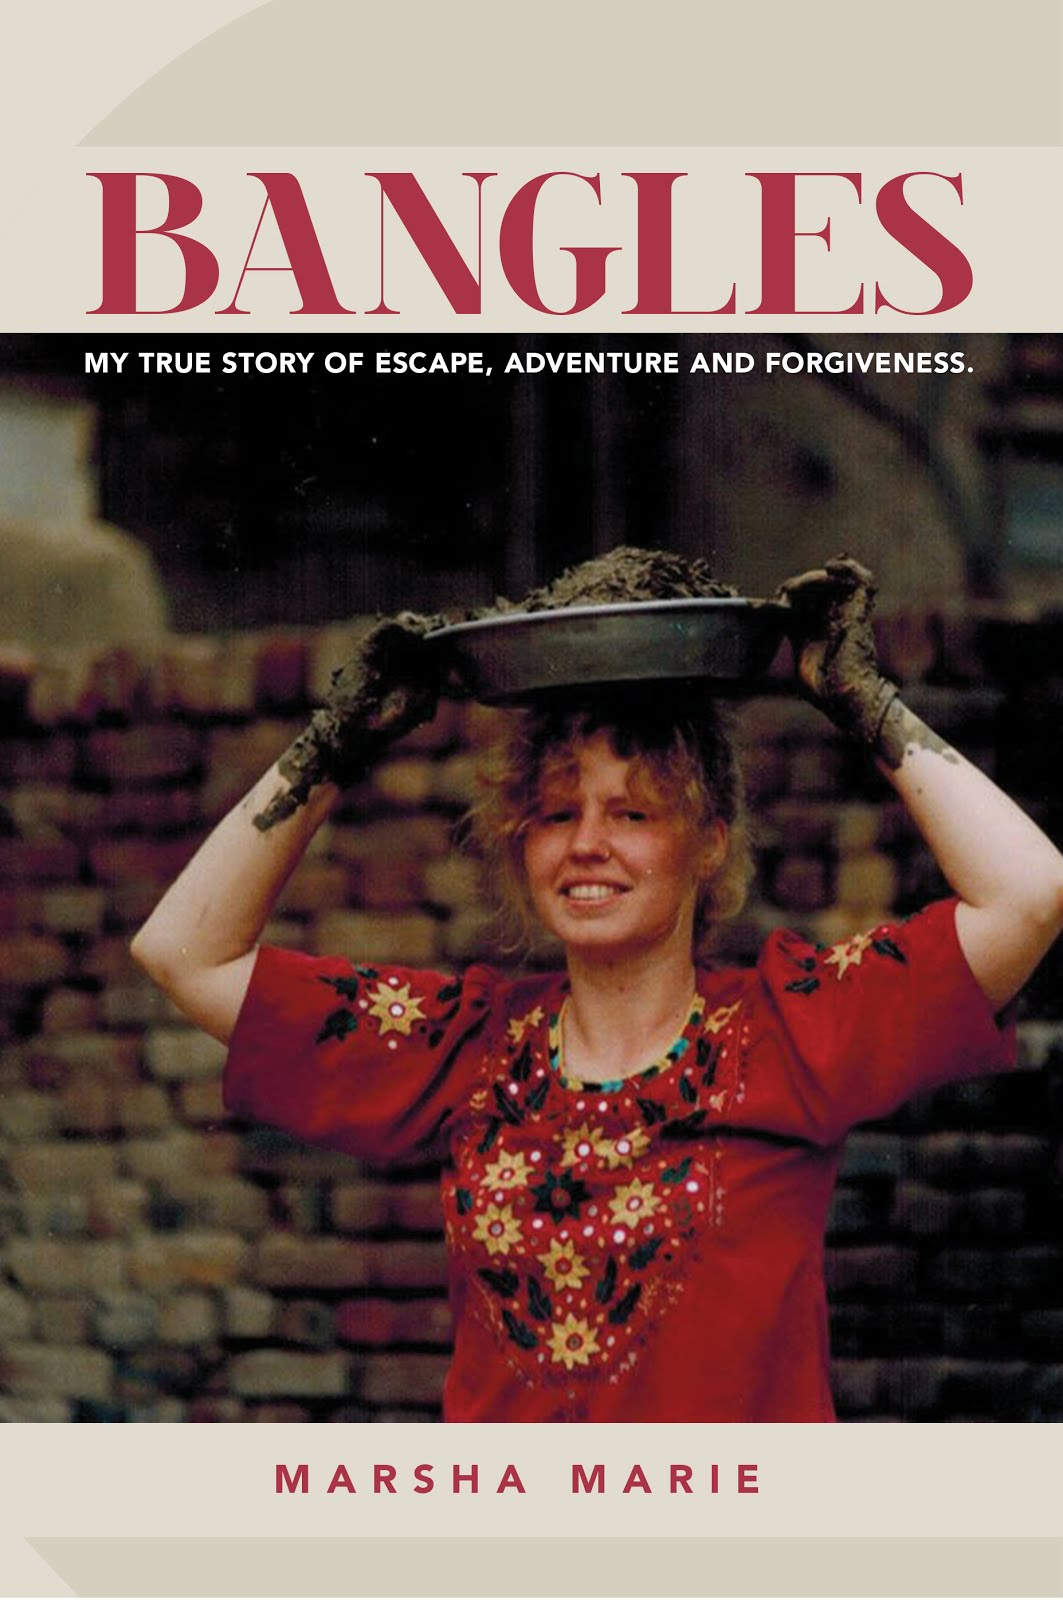 Bangles: My True Story of Escape, Adventure and Forgiveness